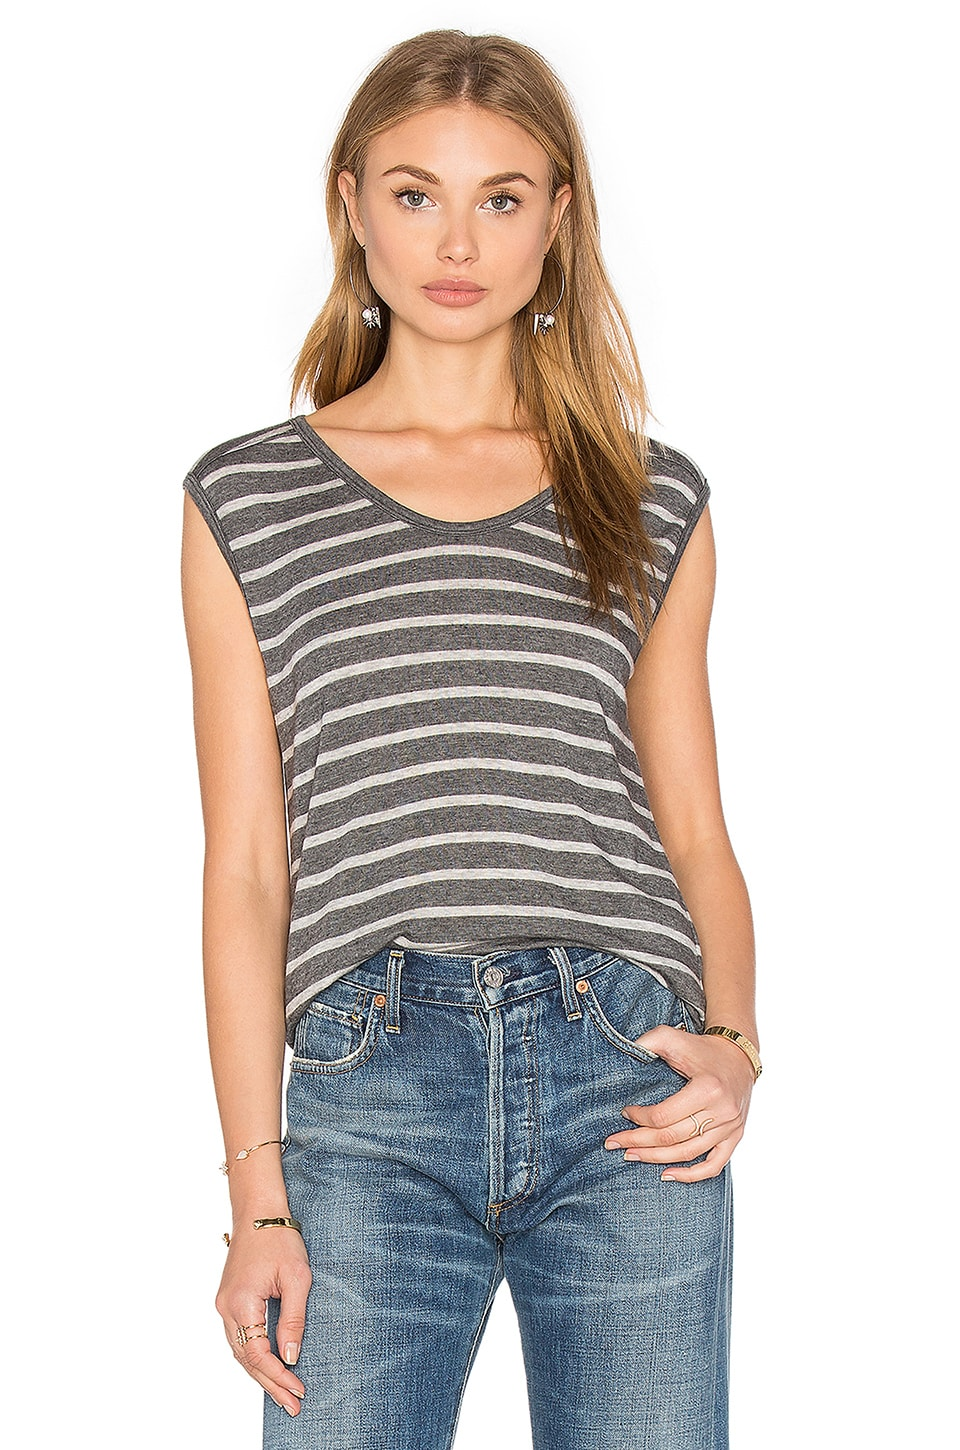 Velvet by Graham & Spencer Crimson Sleeveless Scoop Neck Top in Charcoal & Heather